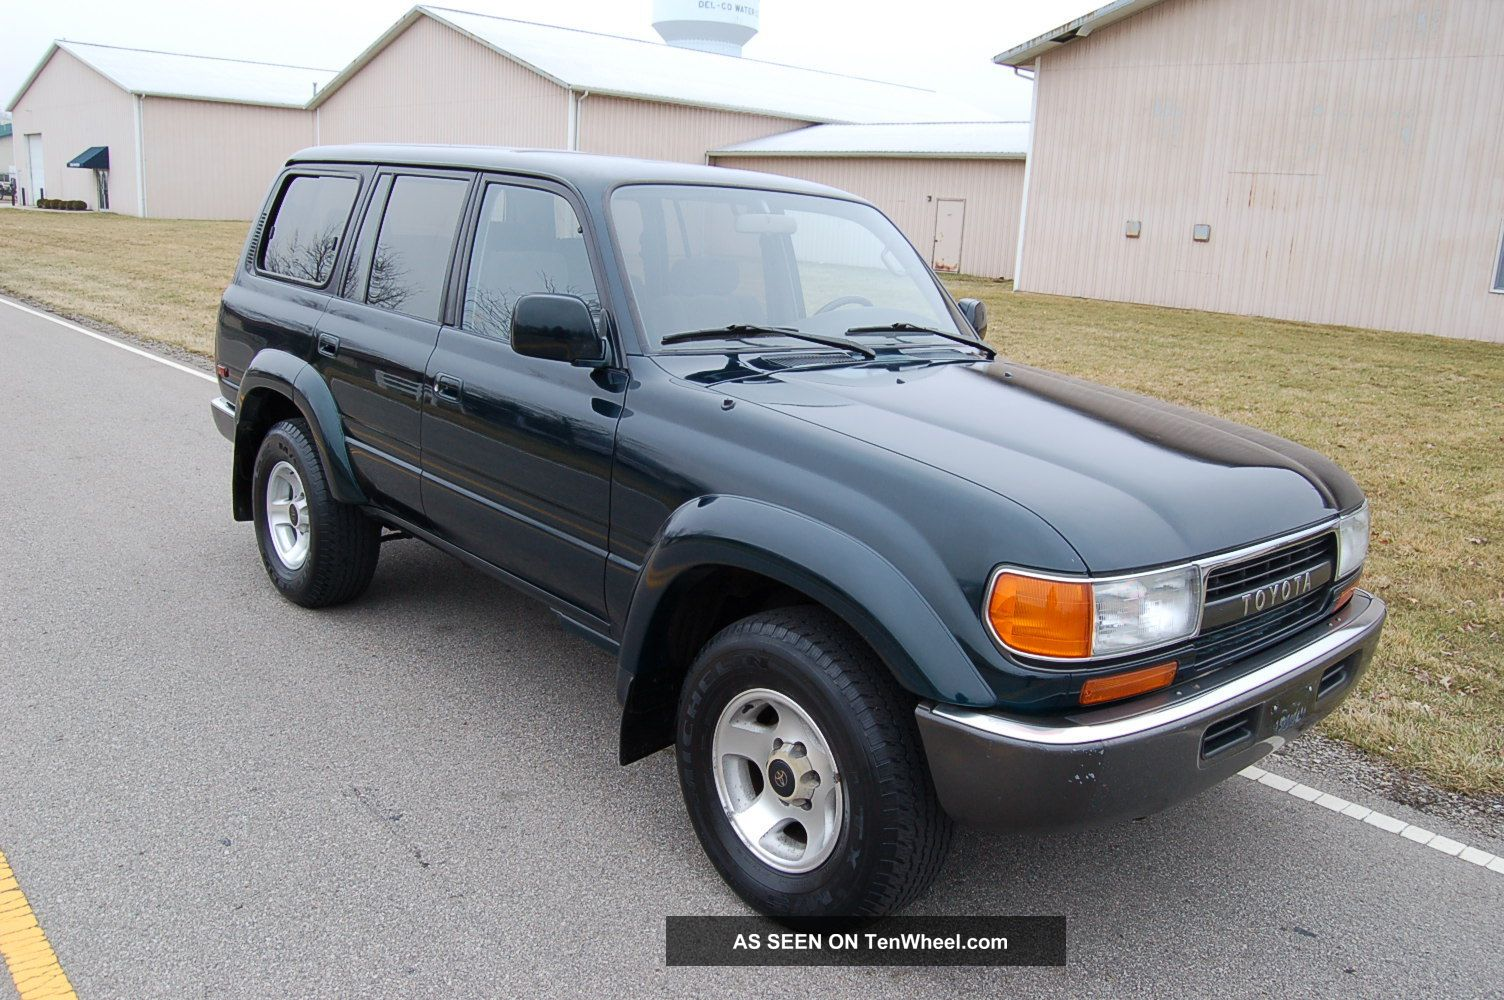 1994 Toyota Land Cruiser 190k 7 Pass 4wd Crusher Fjz80 Land Cruiser photo